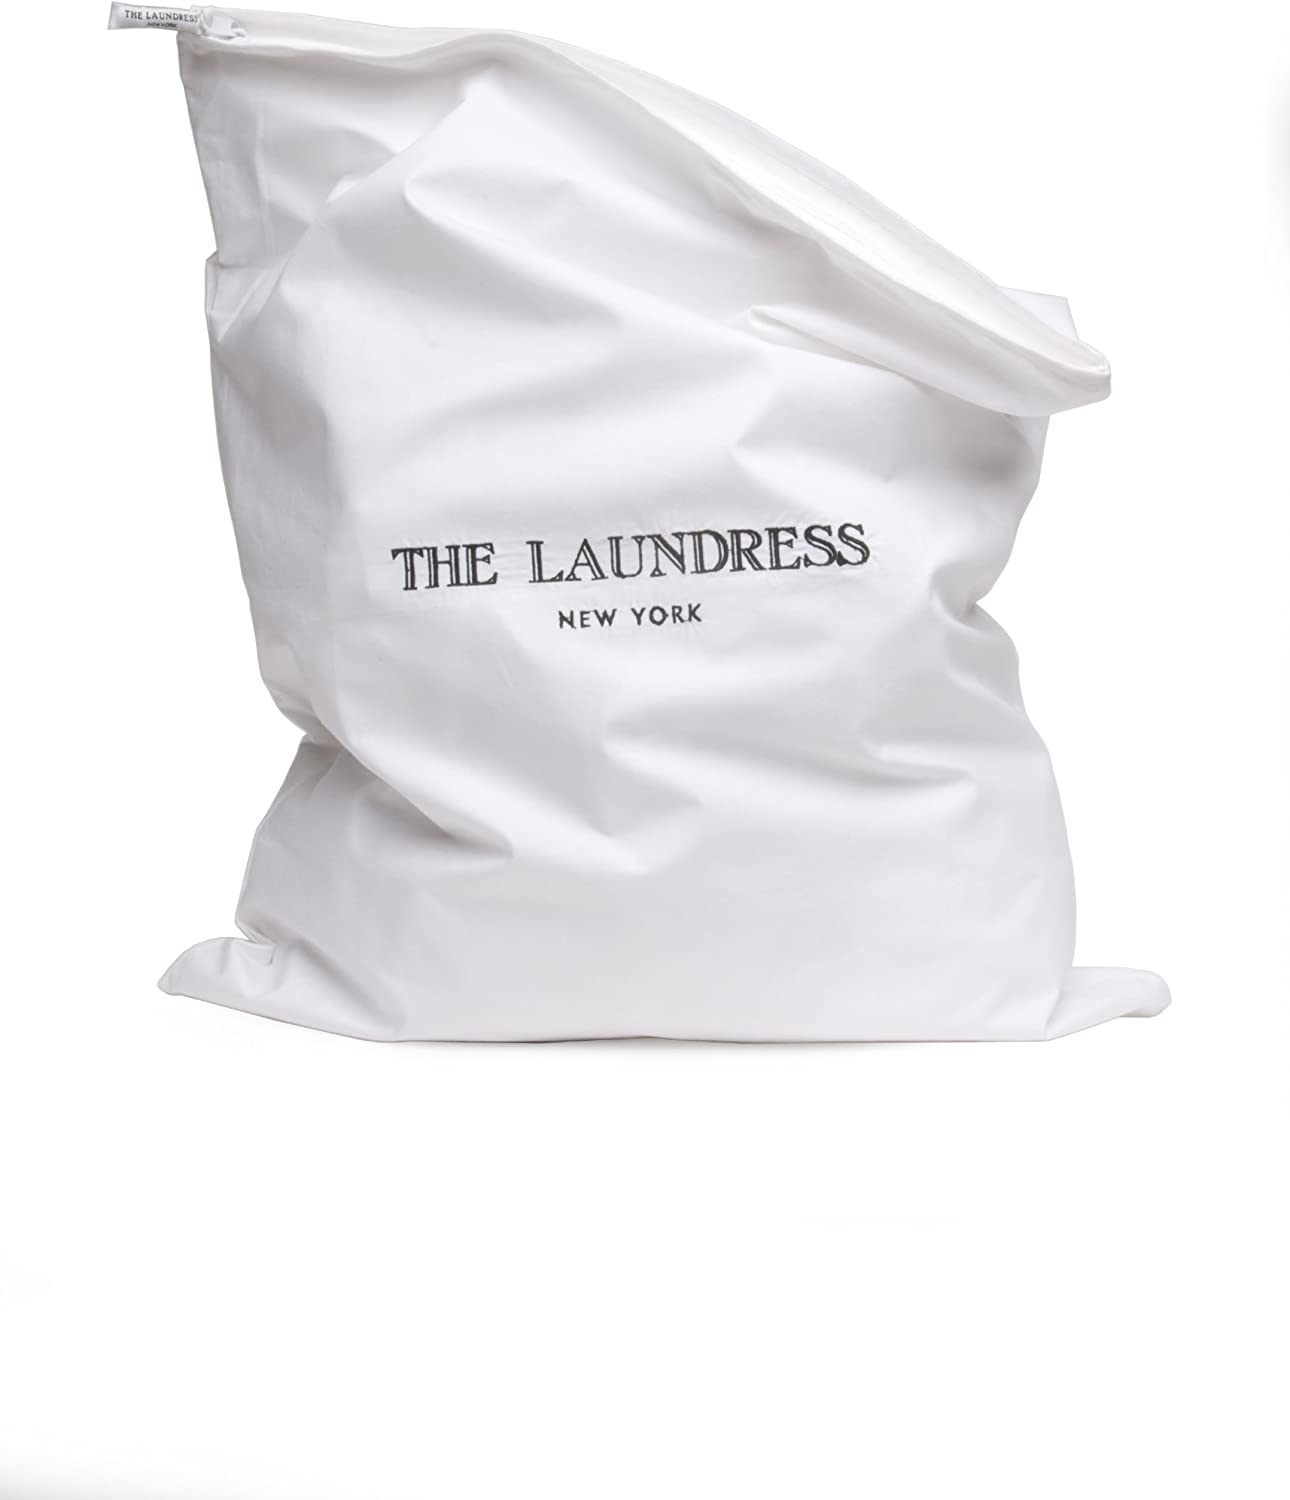 The Laundress - All-Purpose Storage Bag, Clothes and Garments, 100% Cotton, Zip Closure